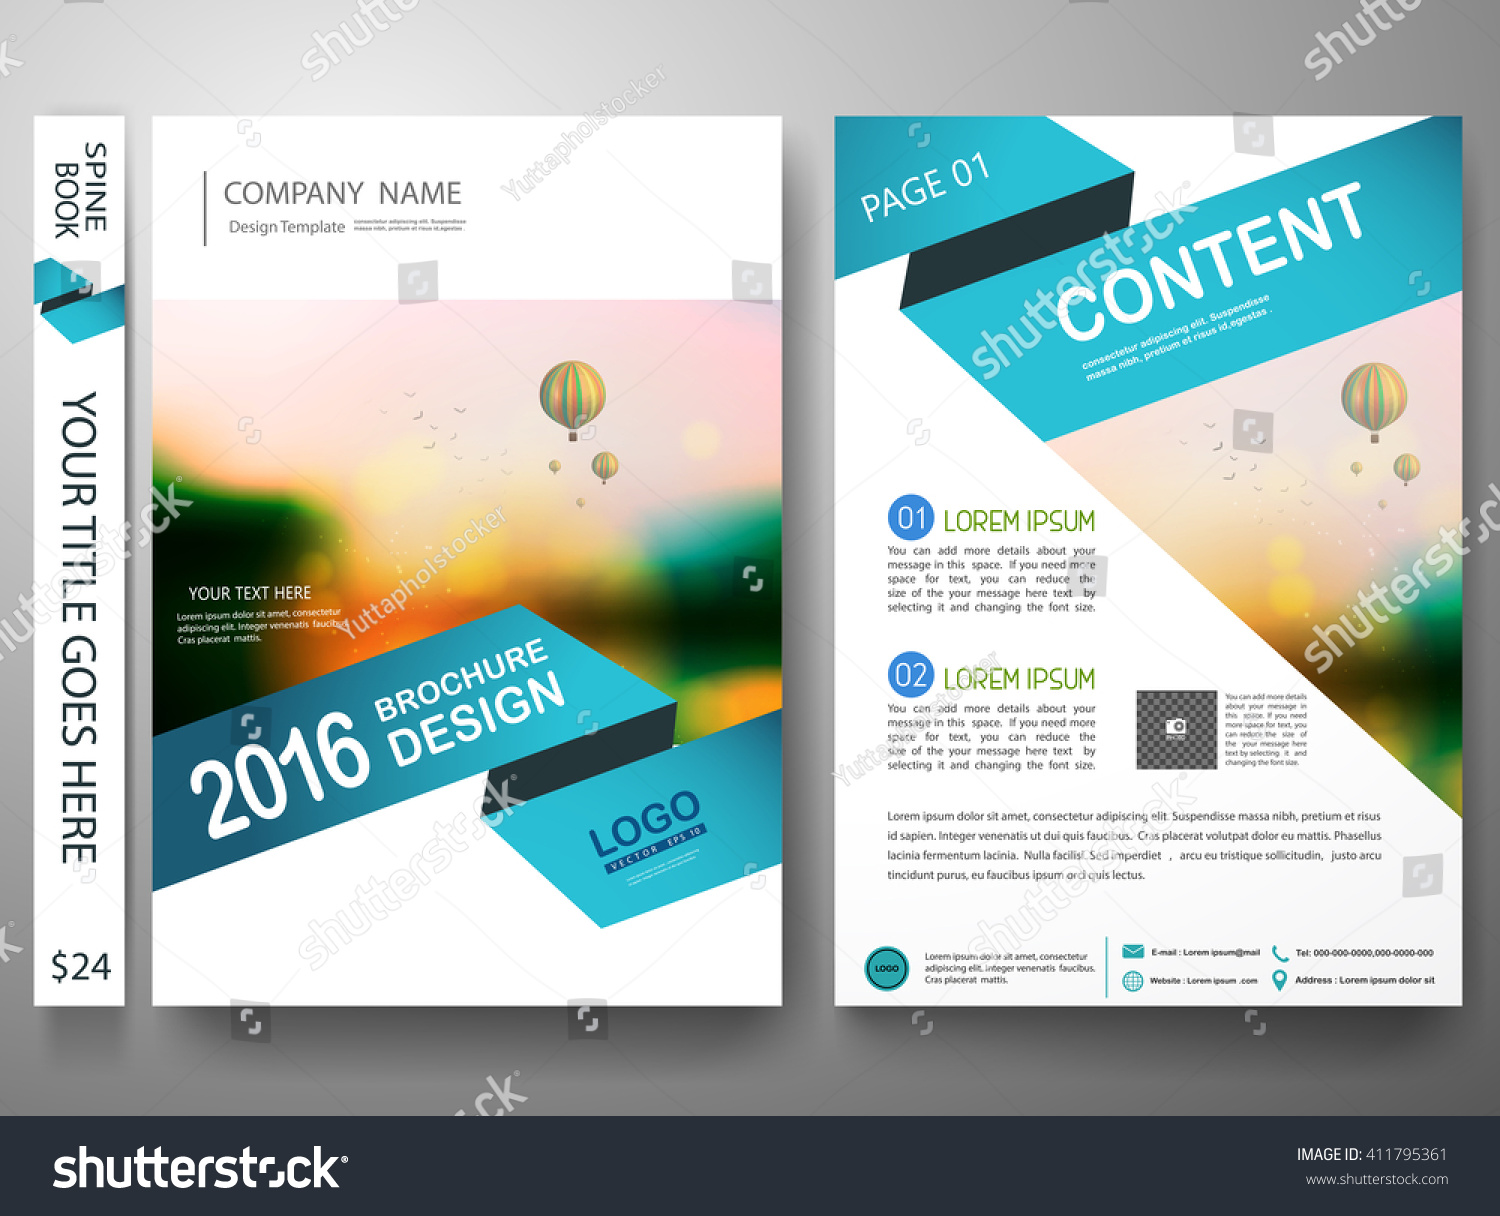 magazine cover ideas picture frame - Brochure Design Template Vector Flyers Report Stock Vector